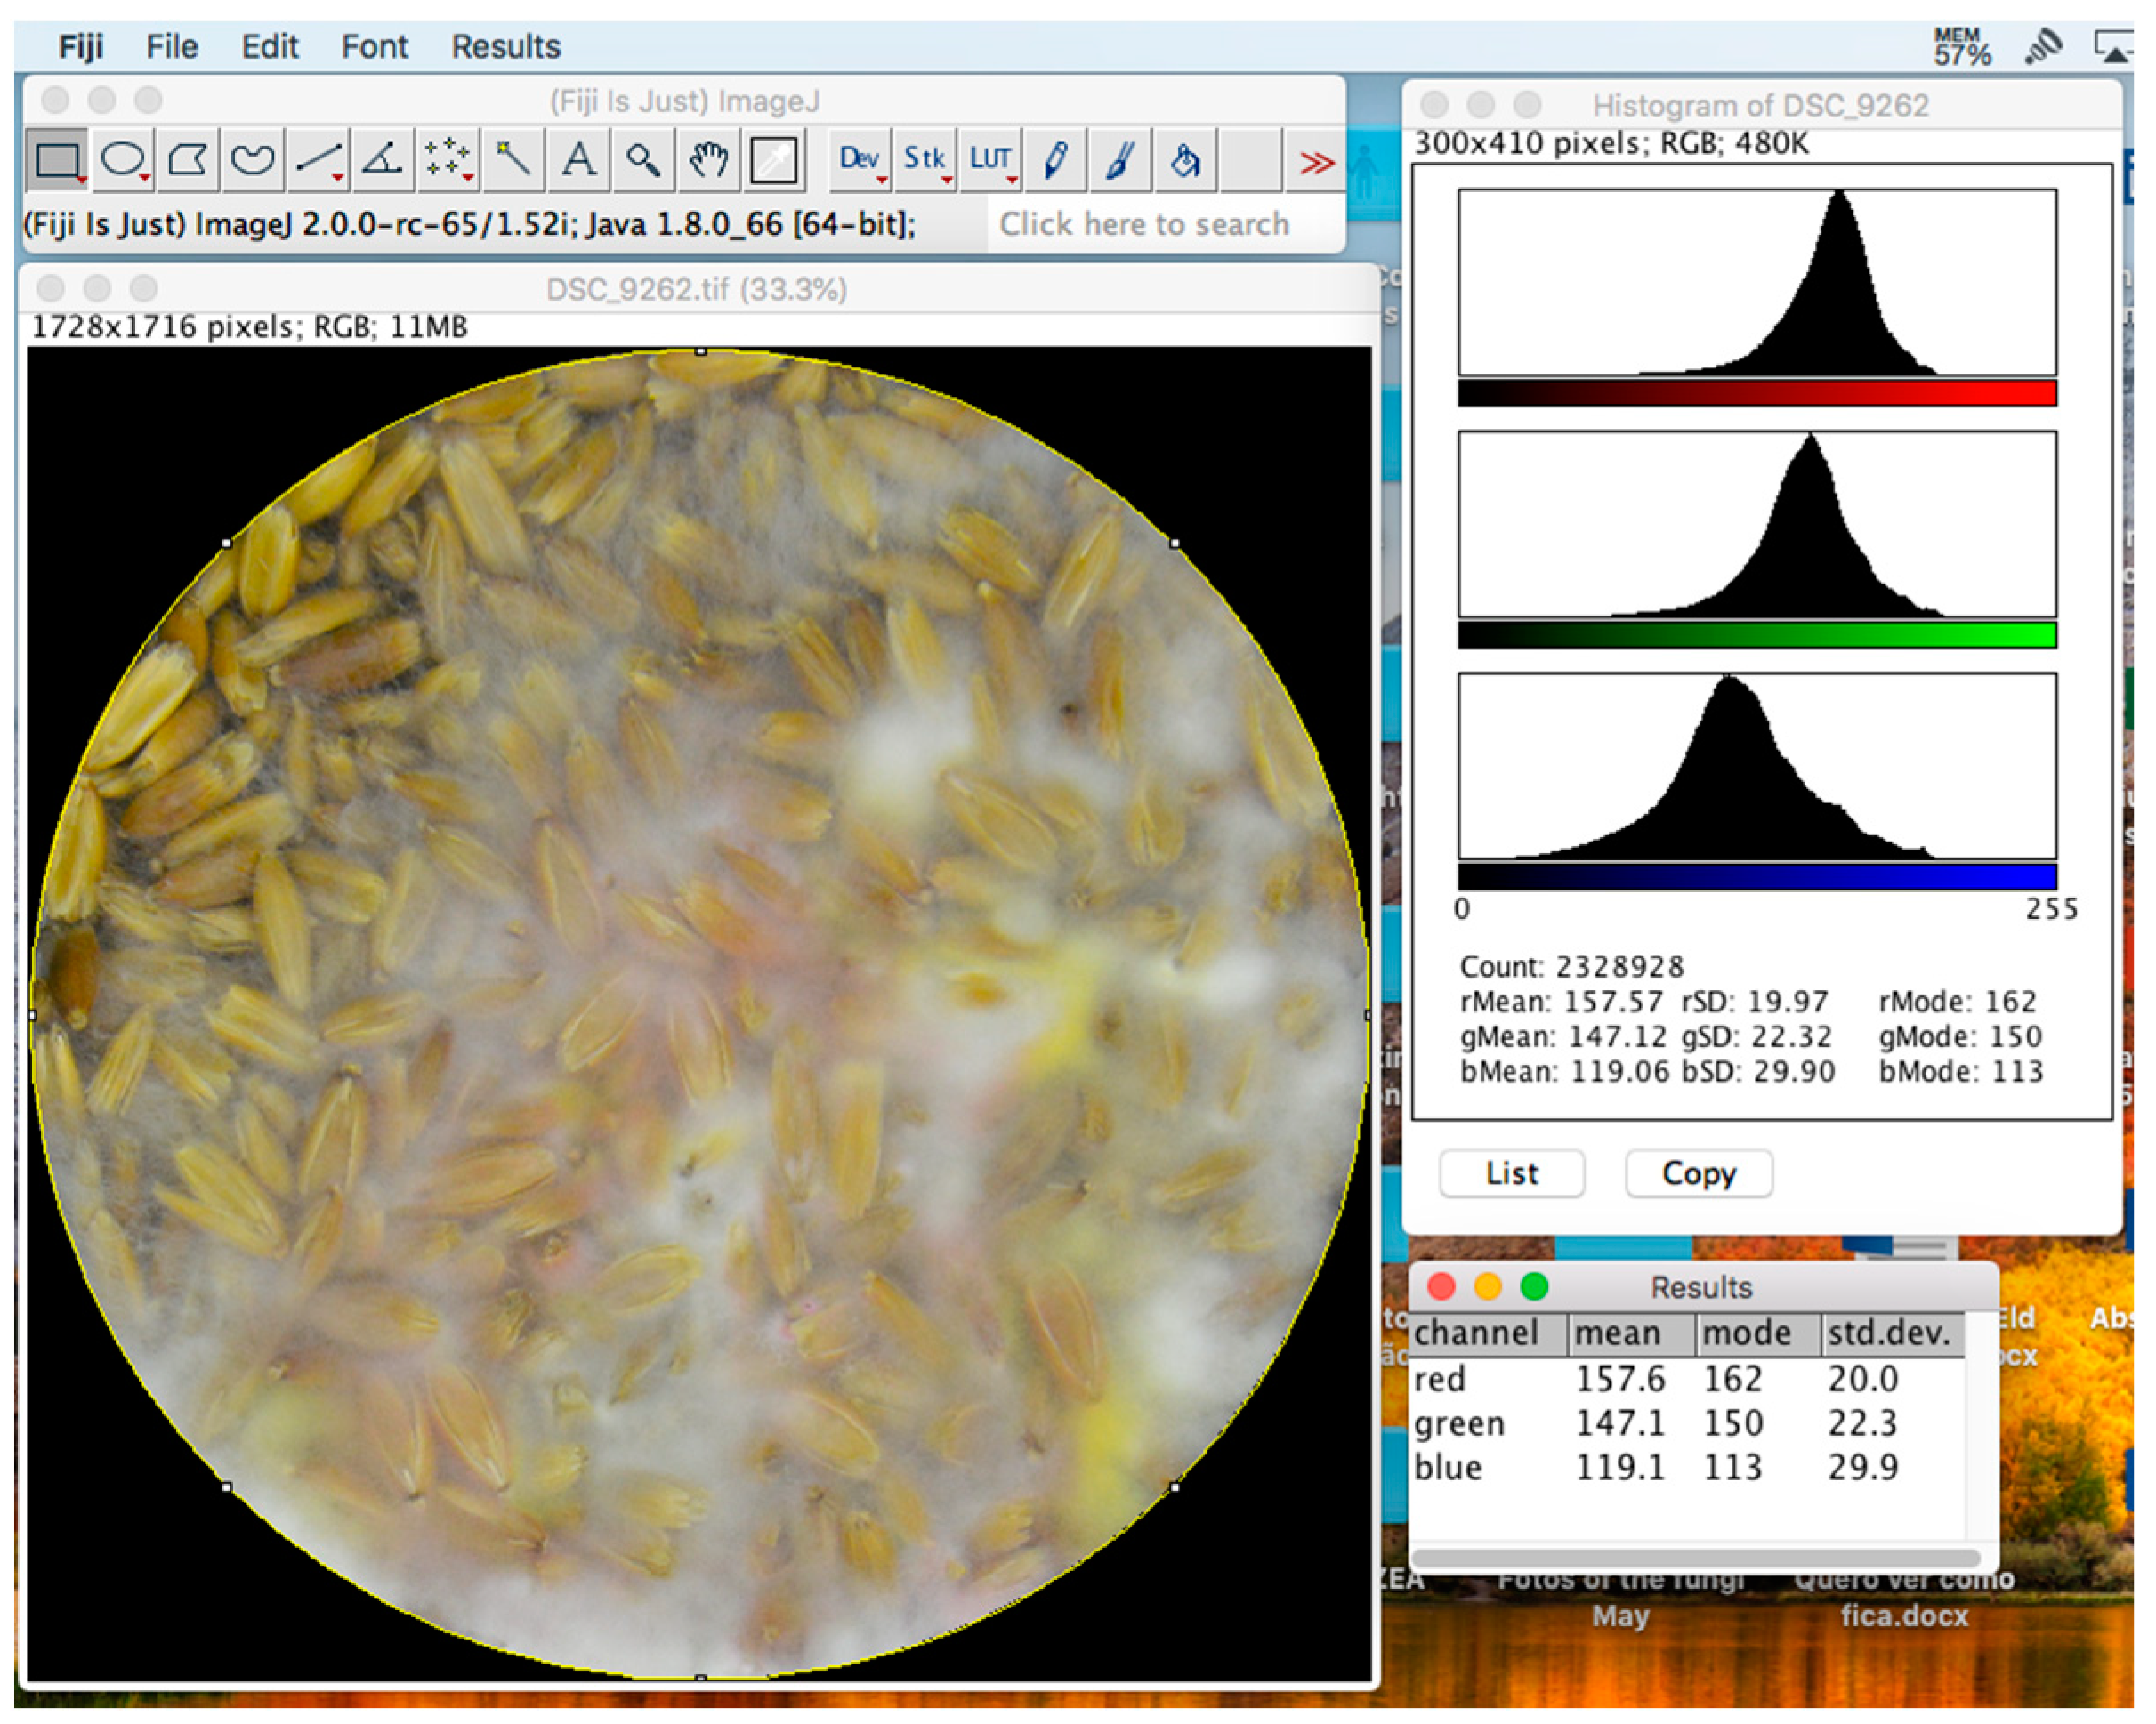 MPs | Free Full-Text | Why RGB Imaging Should be Used to Analyze